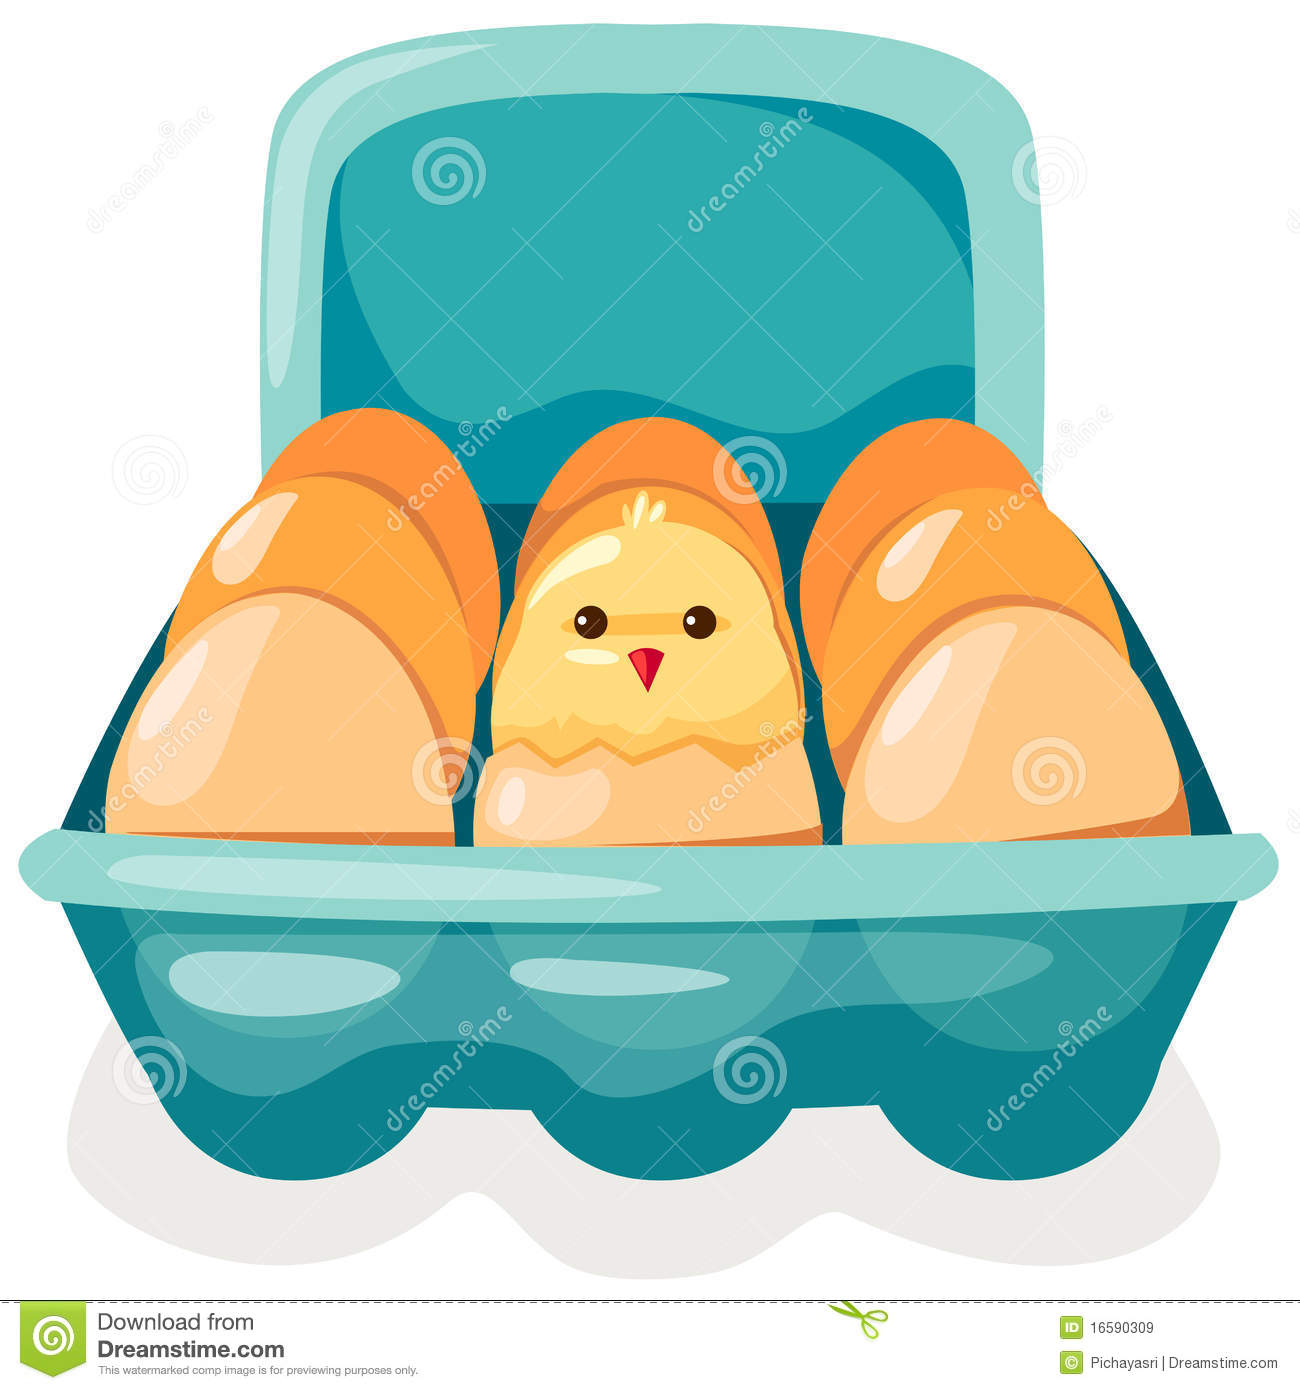 Eggs and chicken in carton stock vector. Illustration of nutritious -  16590309